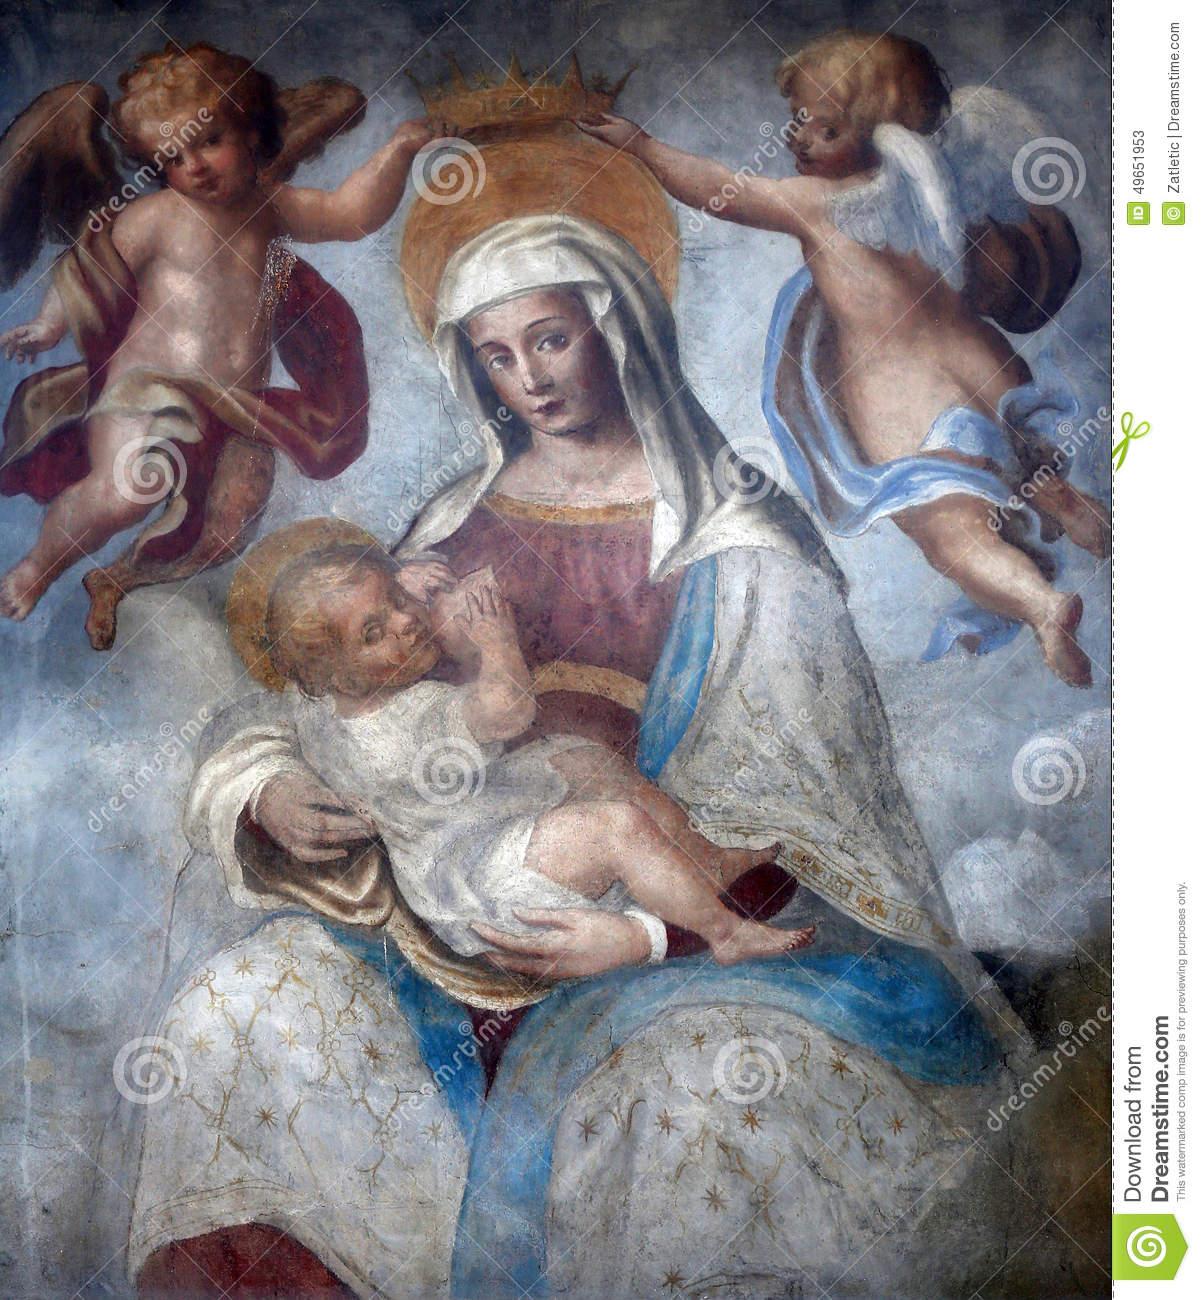 Blessed virgin mary with baby jesus street wall painting parma